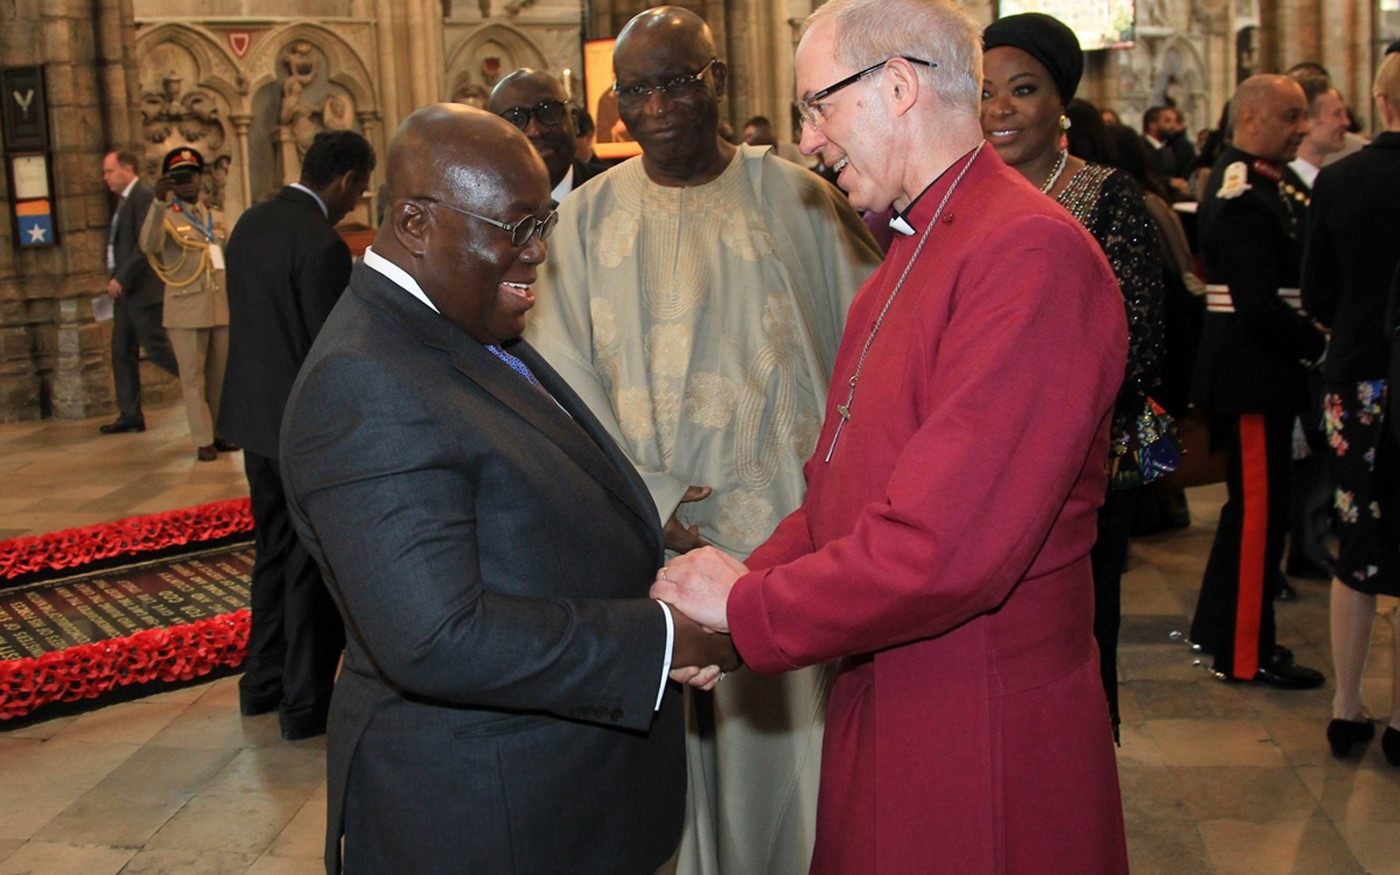 The President of the Republic of Ghana, Nana Akufo-Addo, with The Most Reverend and Right Honourable Justin Welby, Archbishop of Canterbury, Primate of All England and Metropolitan after the service